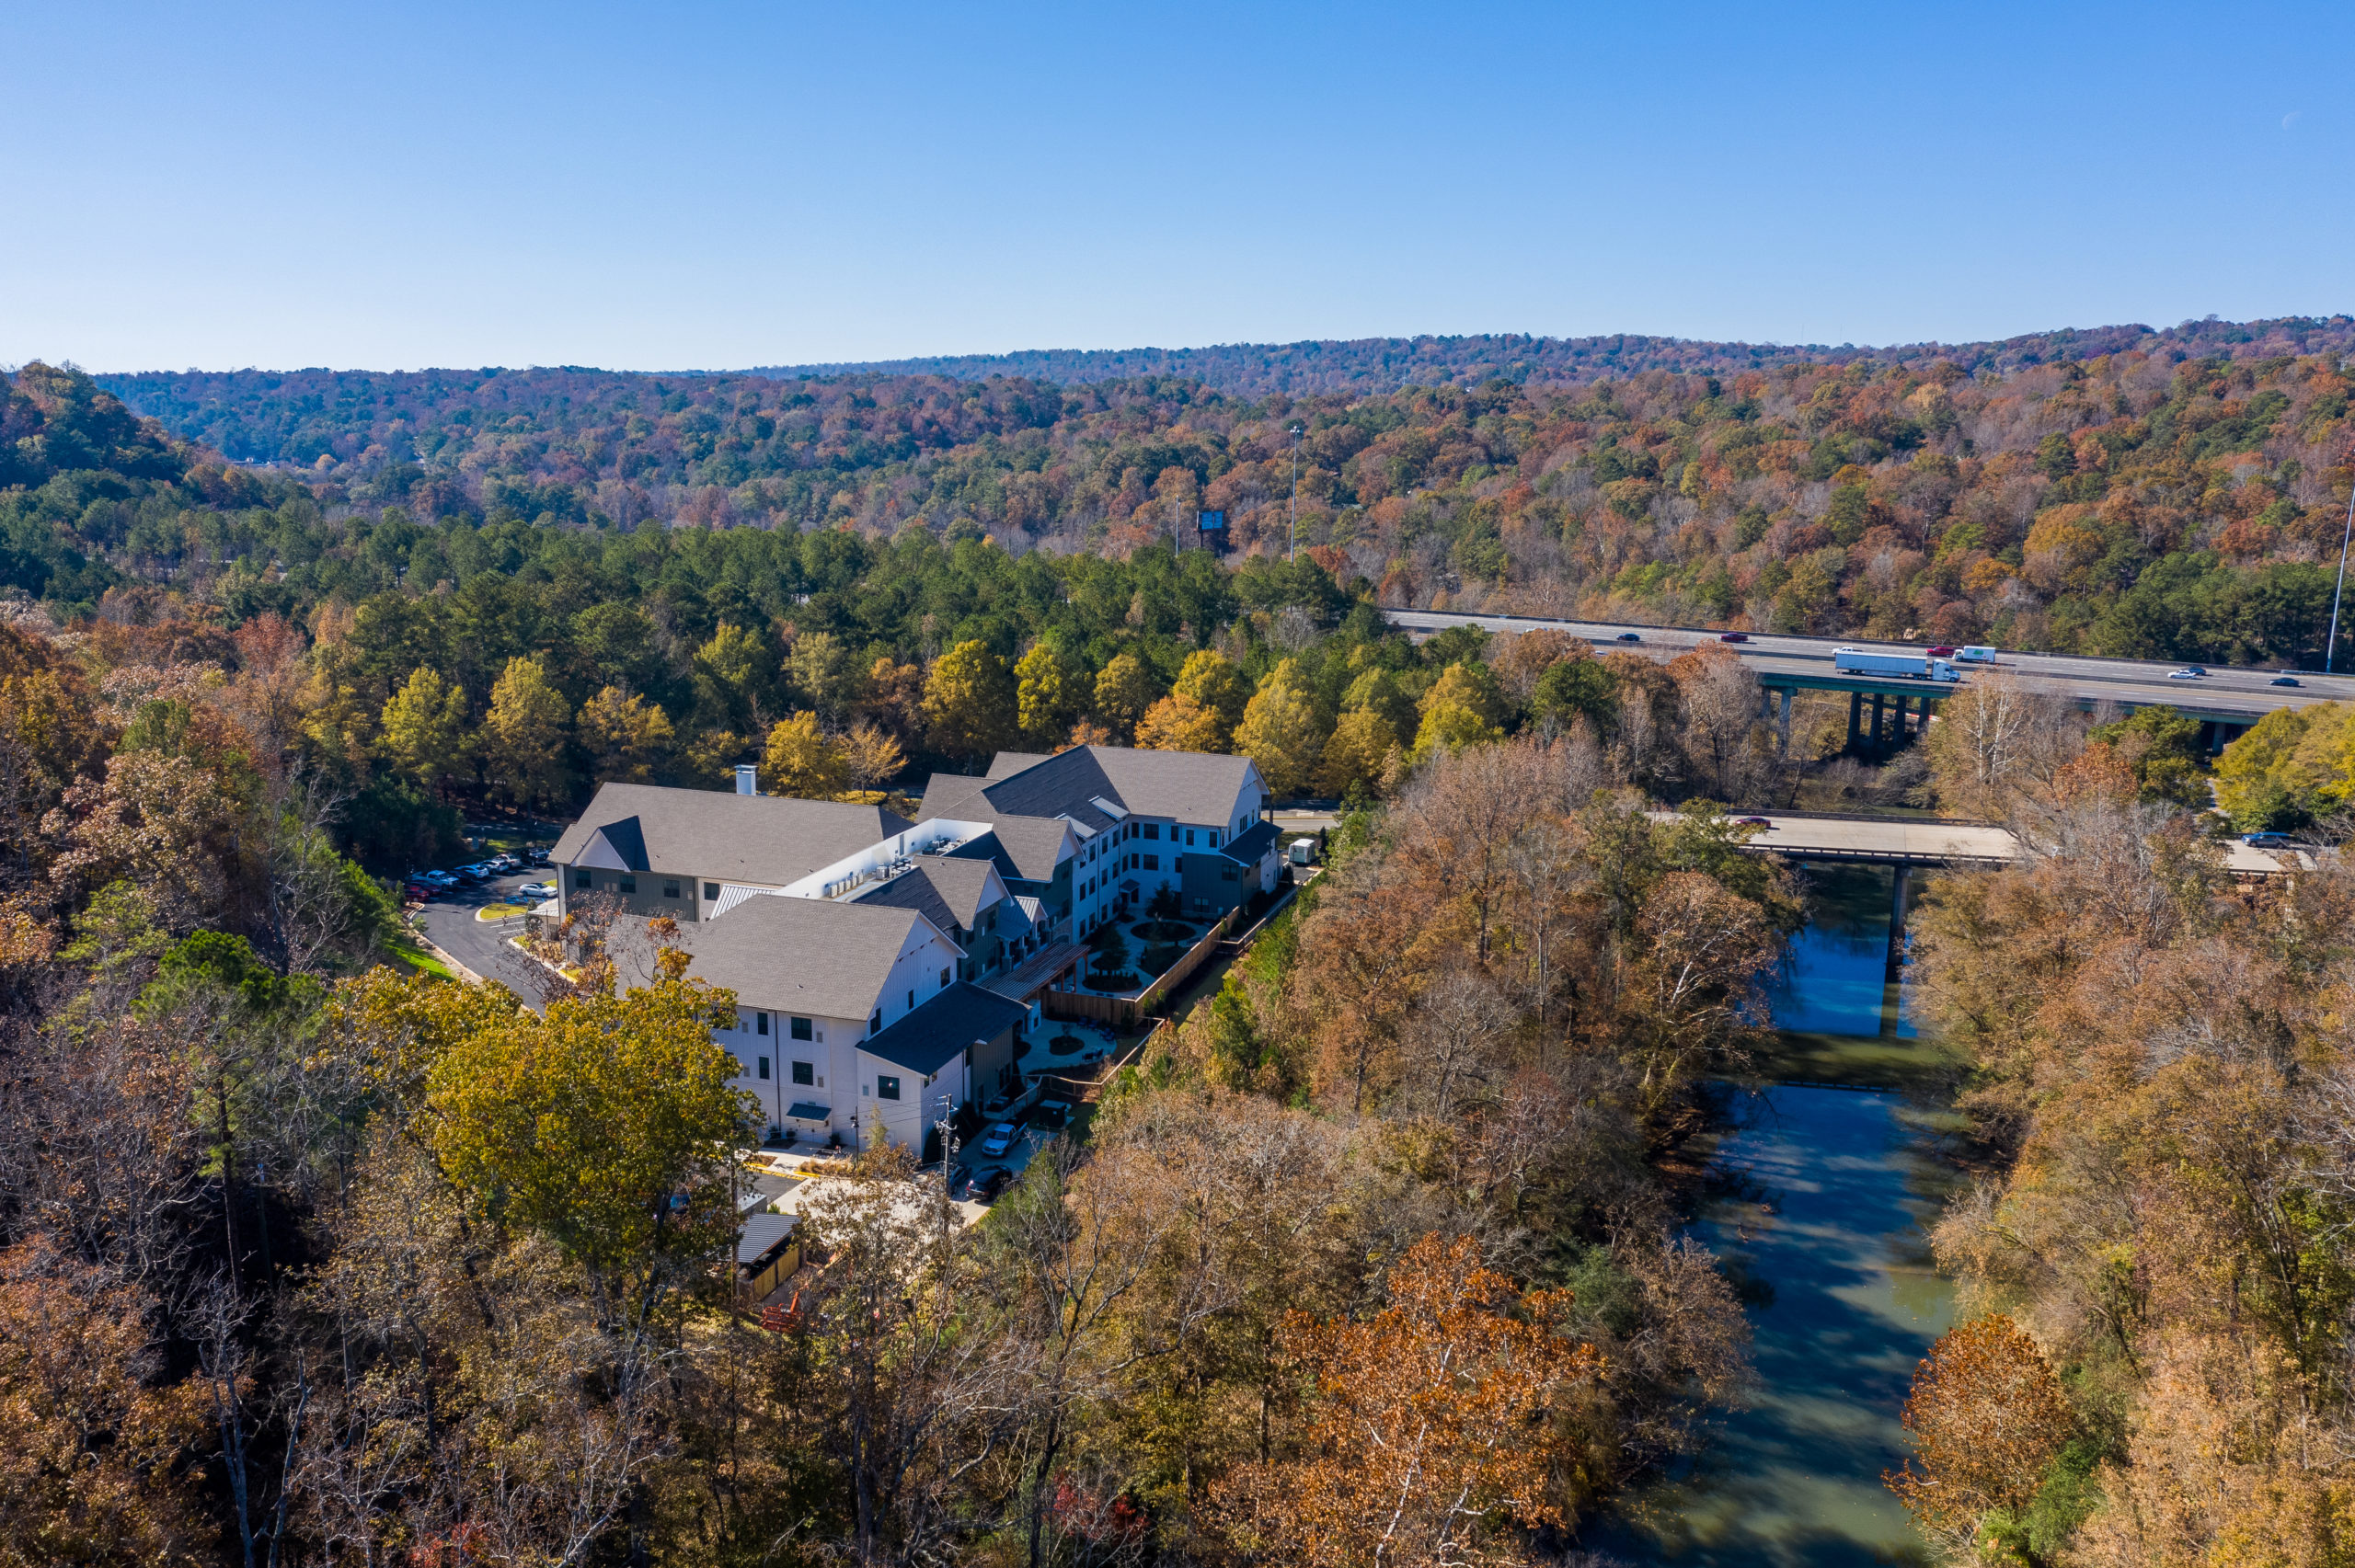 Aerial view of Longleaf community with river view to the right and community to the left surrounded by trees with fall colors